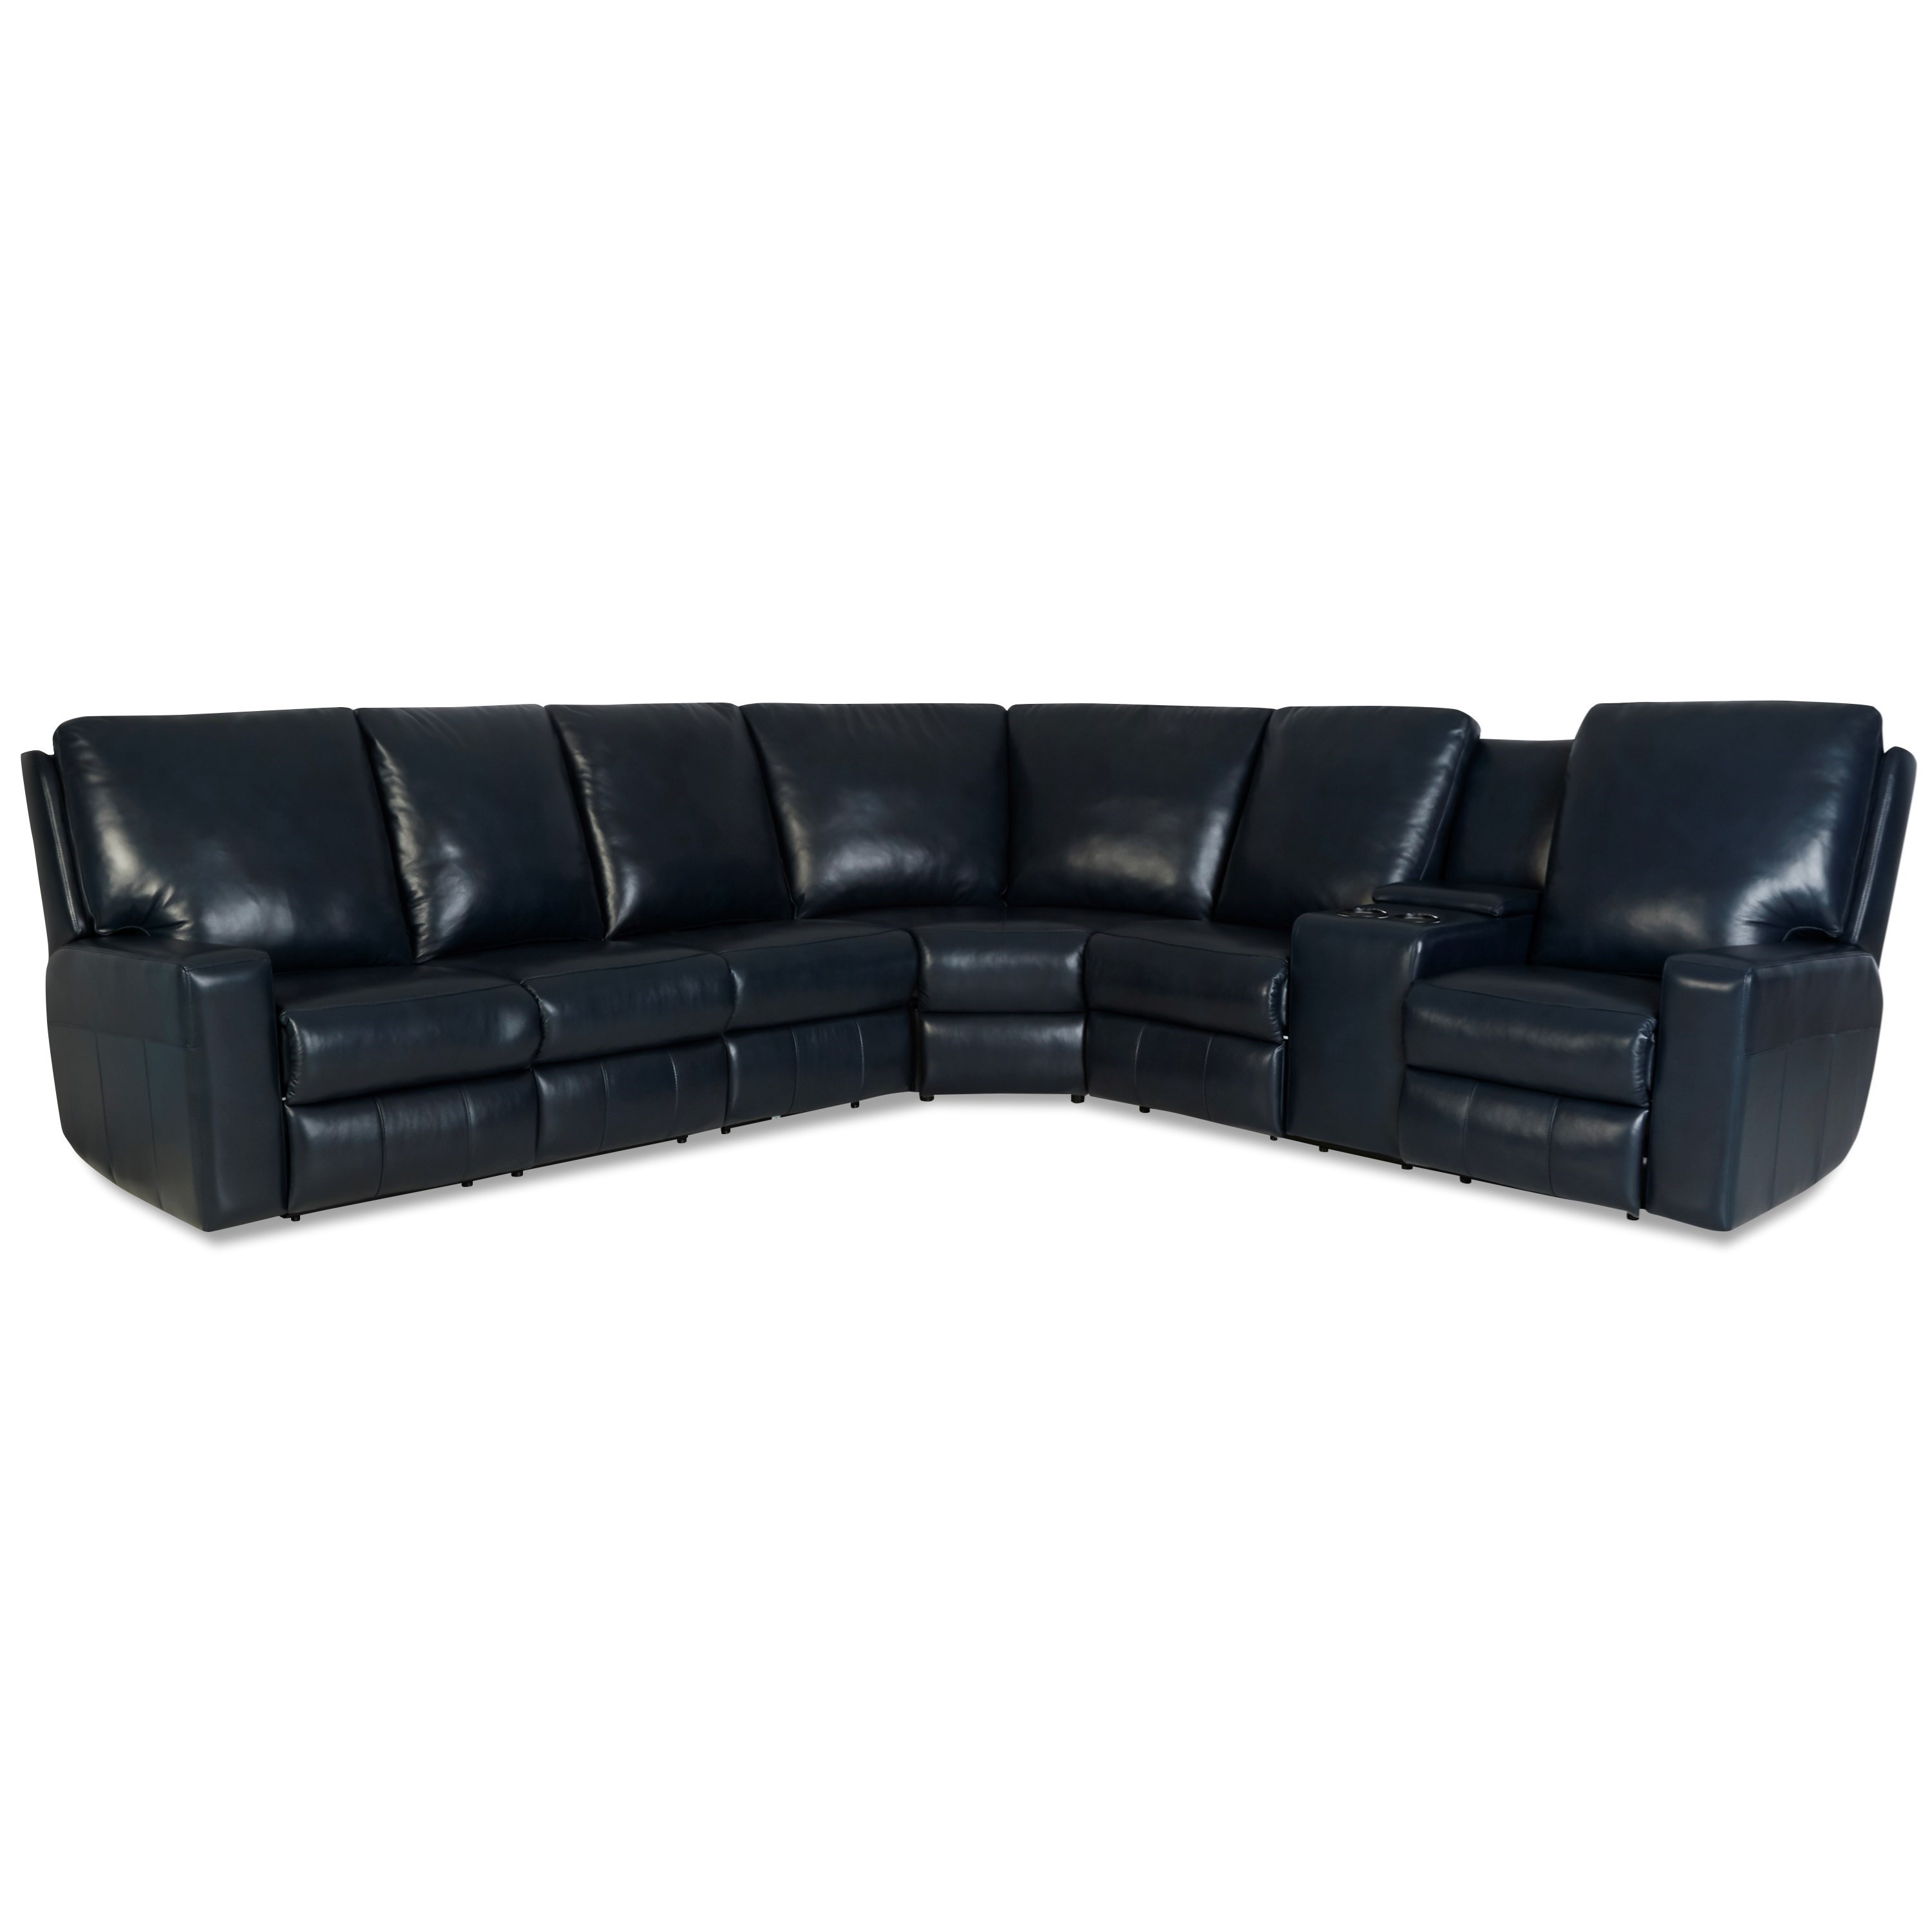 Alliser Power Reclining Sectional w/ Pwr Headrests by Klaussner at Catalog Outlet